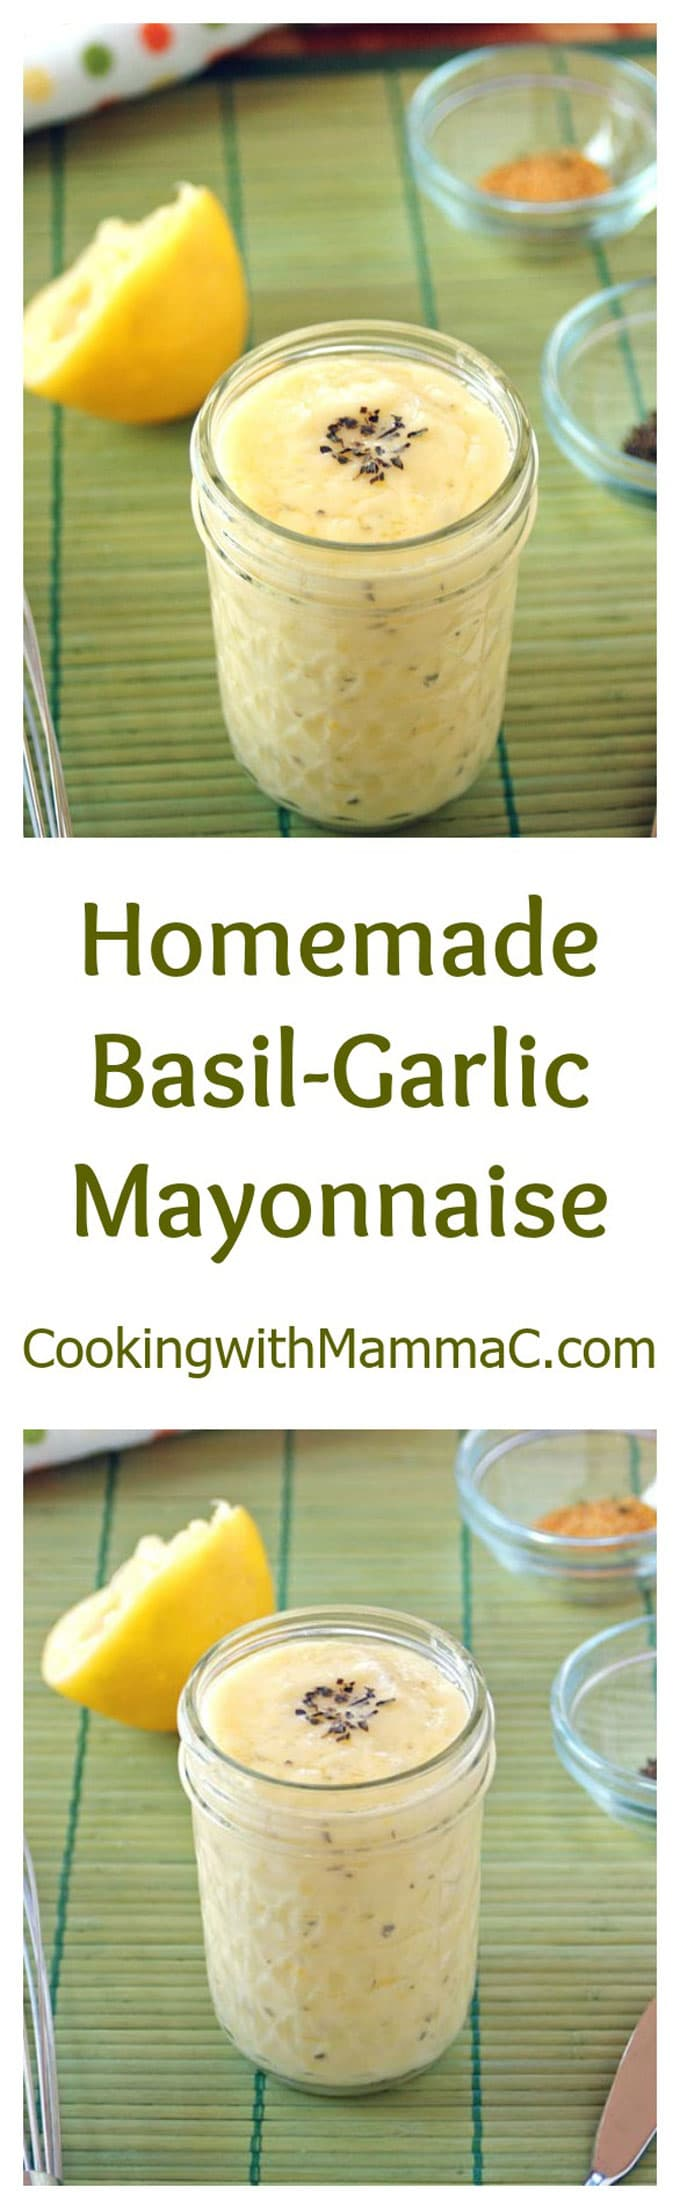 "two photos of Basil-Garlic Mayonnaise in a jar separated by the words, ""Homemade Basil-Garlic Mayonnaise\"""